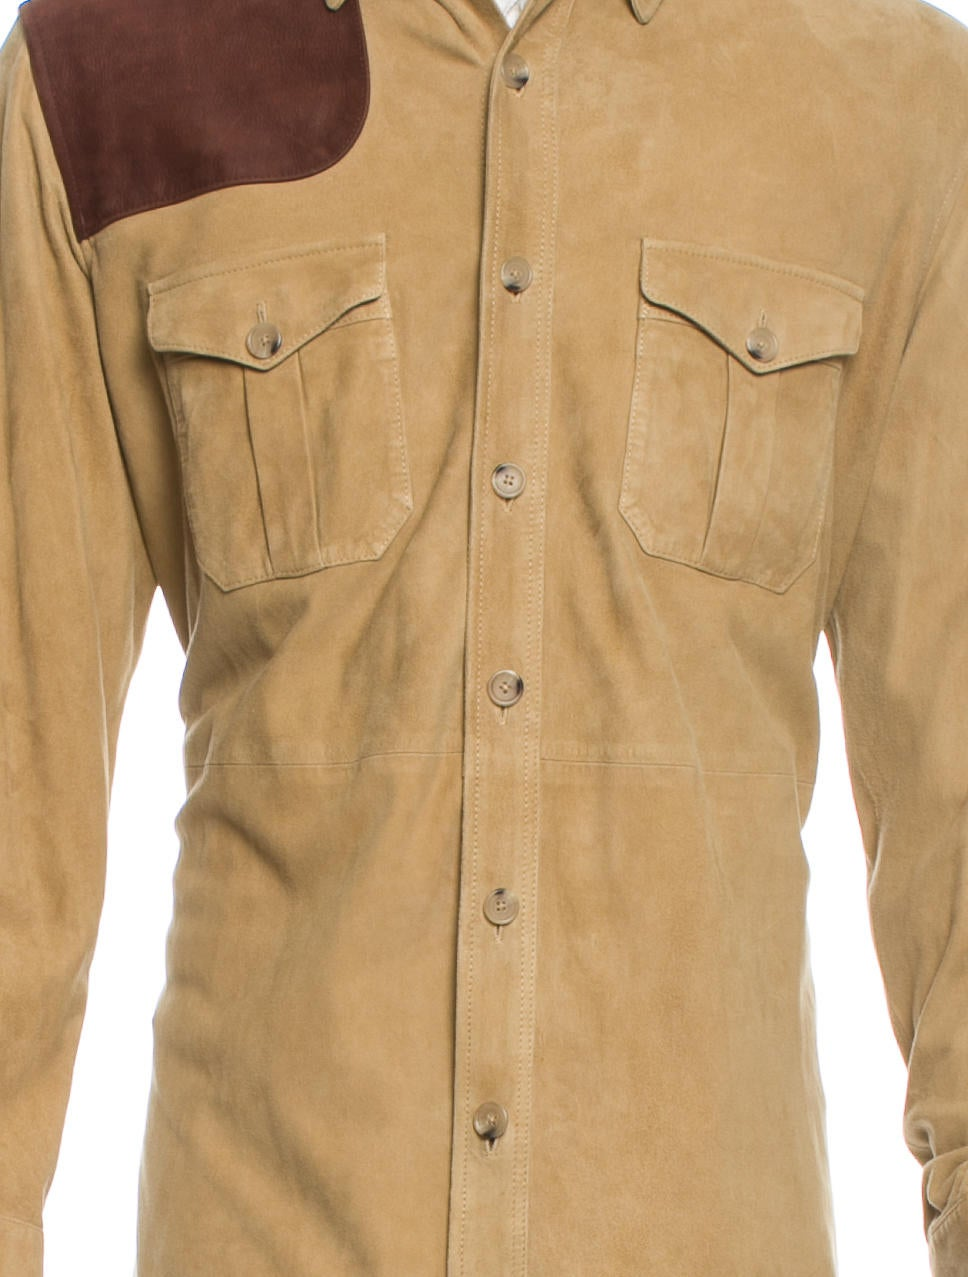 Polo Ralph Lauren Suede Shirt Jacket W Tags Clothing